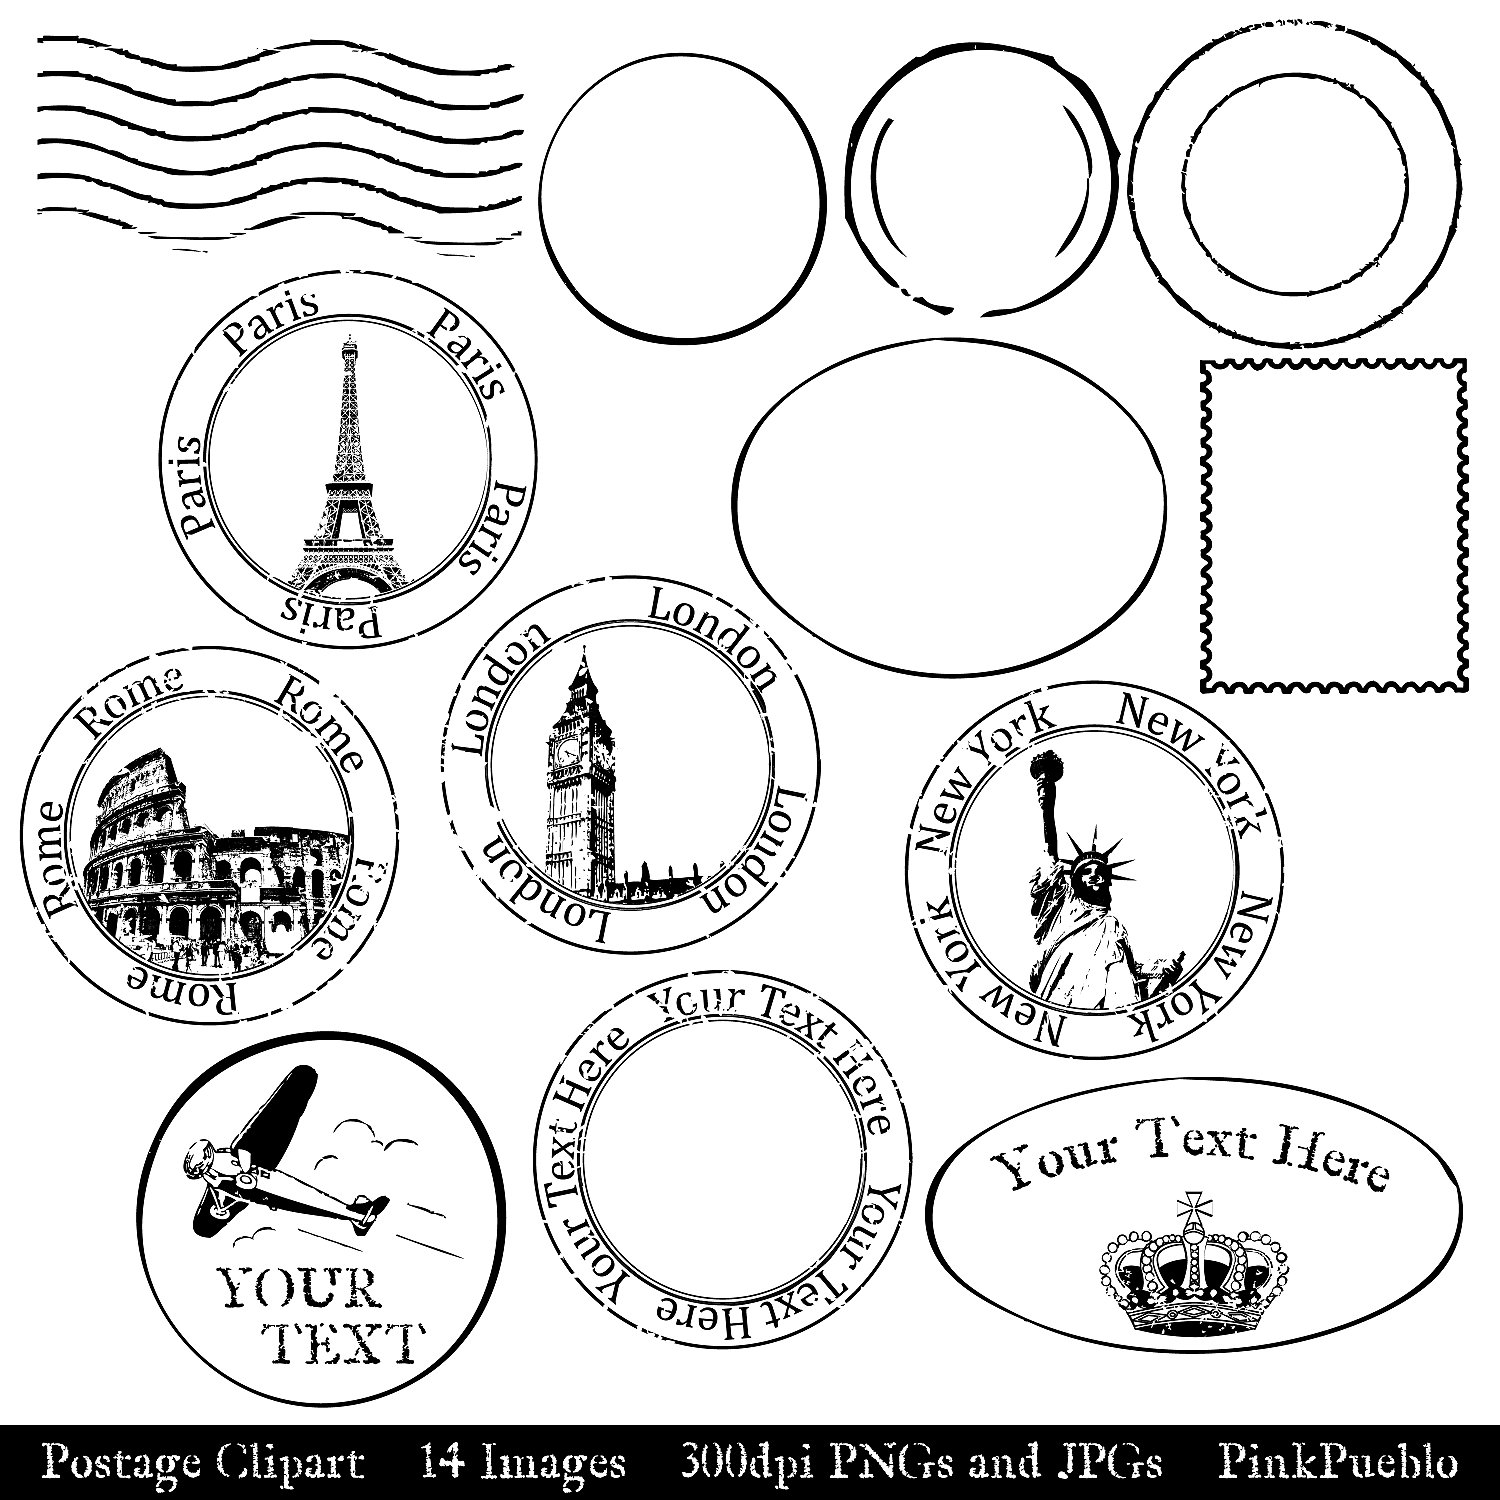 Vintage stamp clipart banner black and white library Free Vintage Travel Cliparts, Download Free Clip Art, Free ... banner black and white library